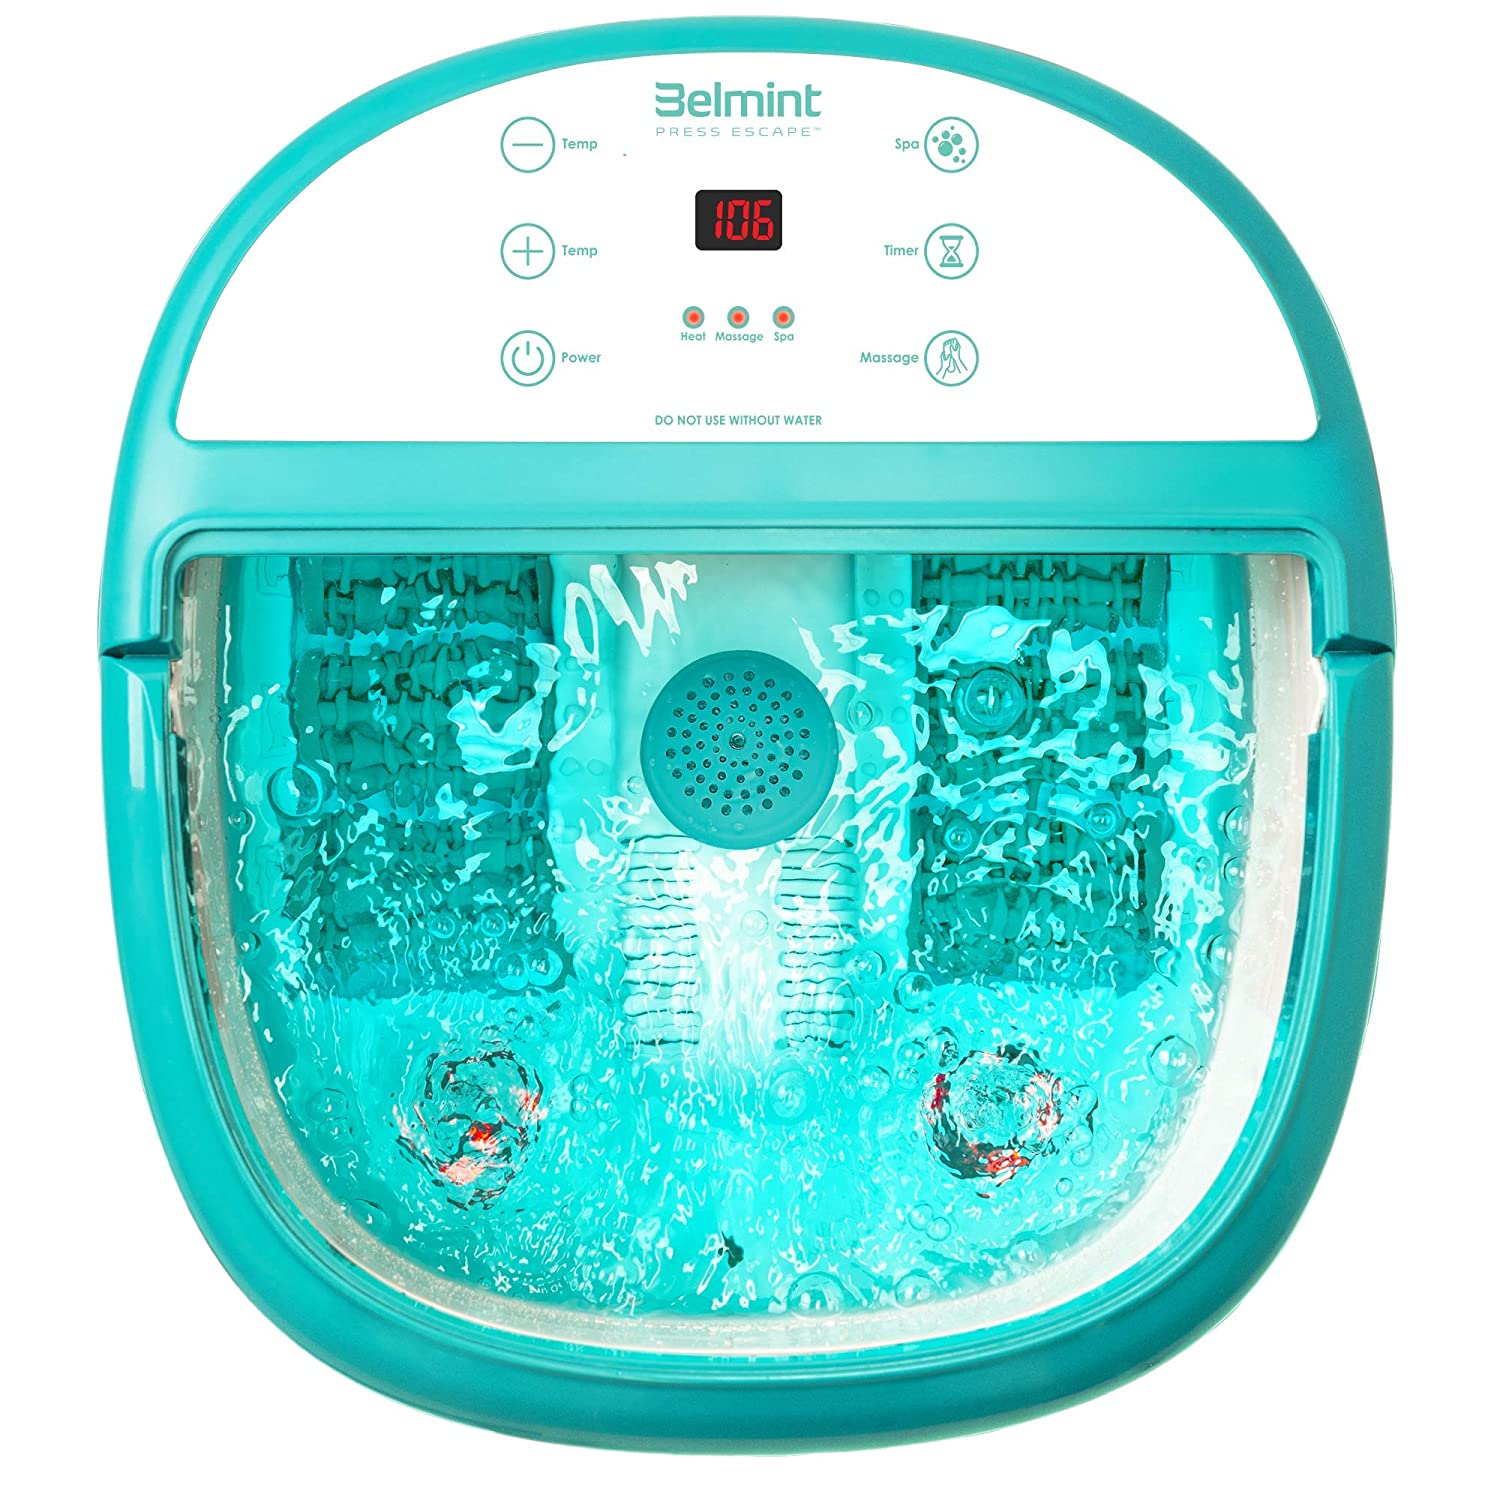 Belmint Foot Spa Bath Massager with Heat - Foot Massager Machine Feet Soaking Tub   Features Vibration, Spa, Roller, Massage Mode   6 Pressure Node Rollers for Stress Relief (Renewed)